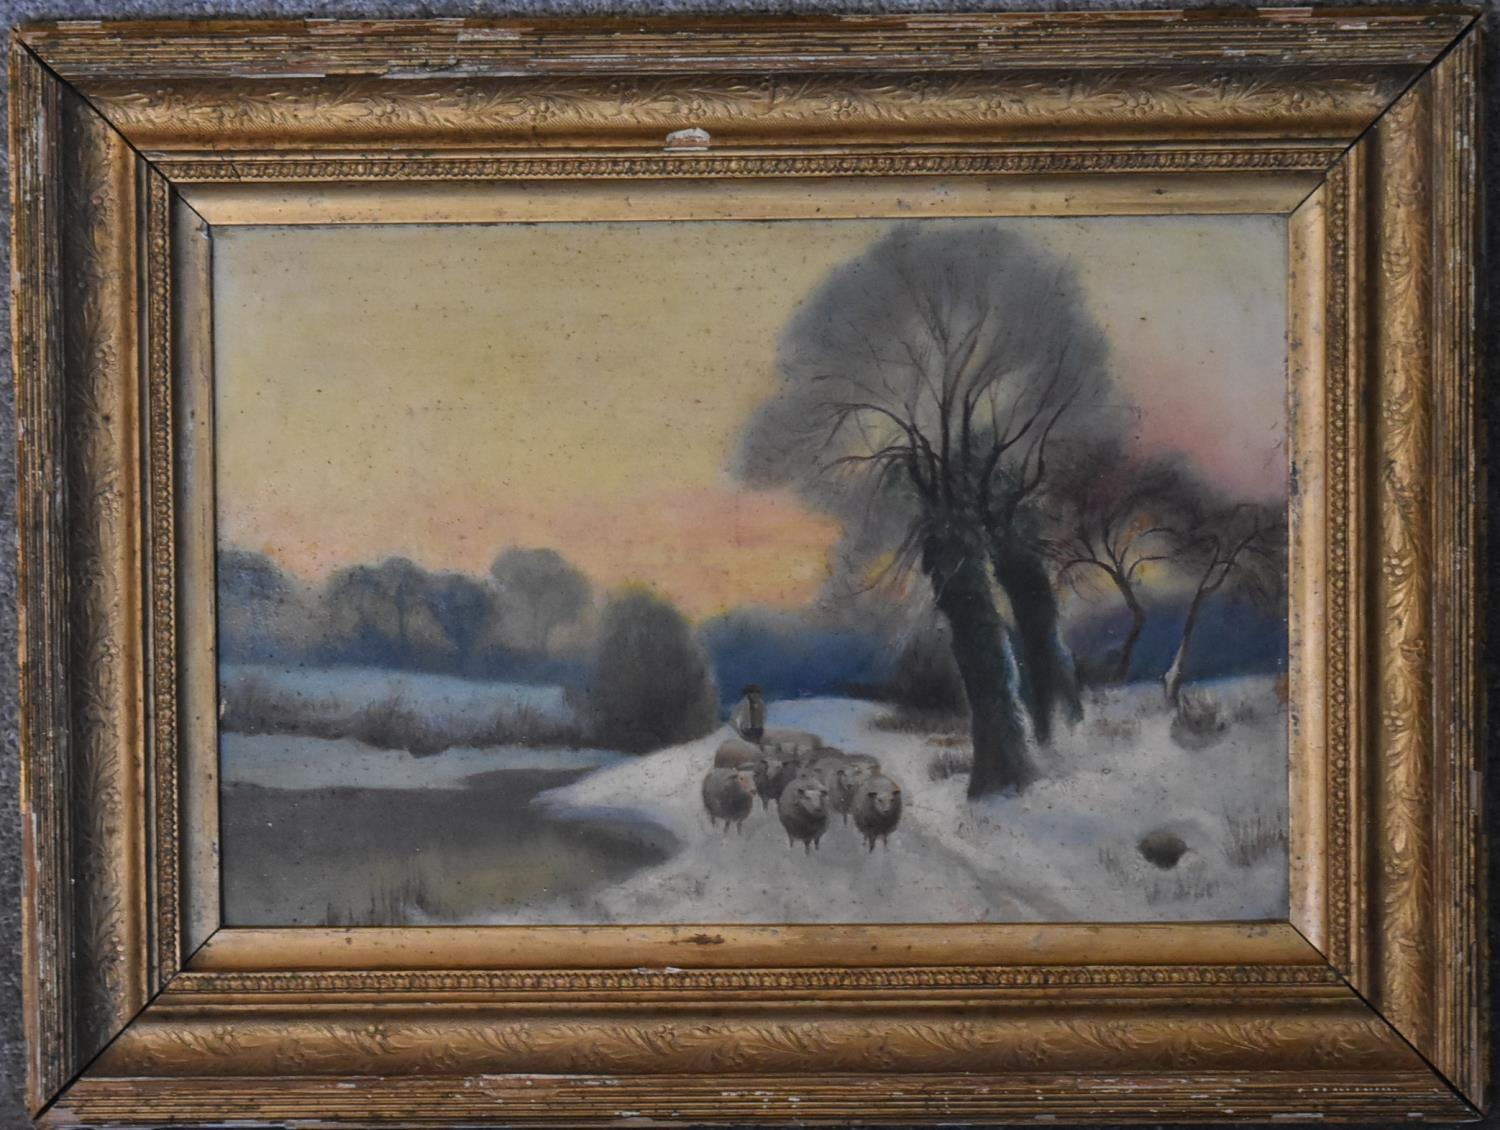 A 19th century gilt framed oil on board, sheep herder and a 19th century painting on glass, - Image 3 of 4